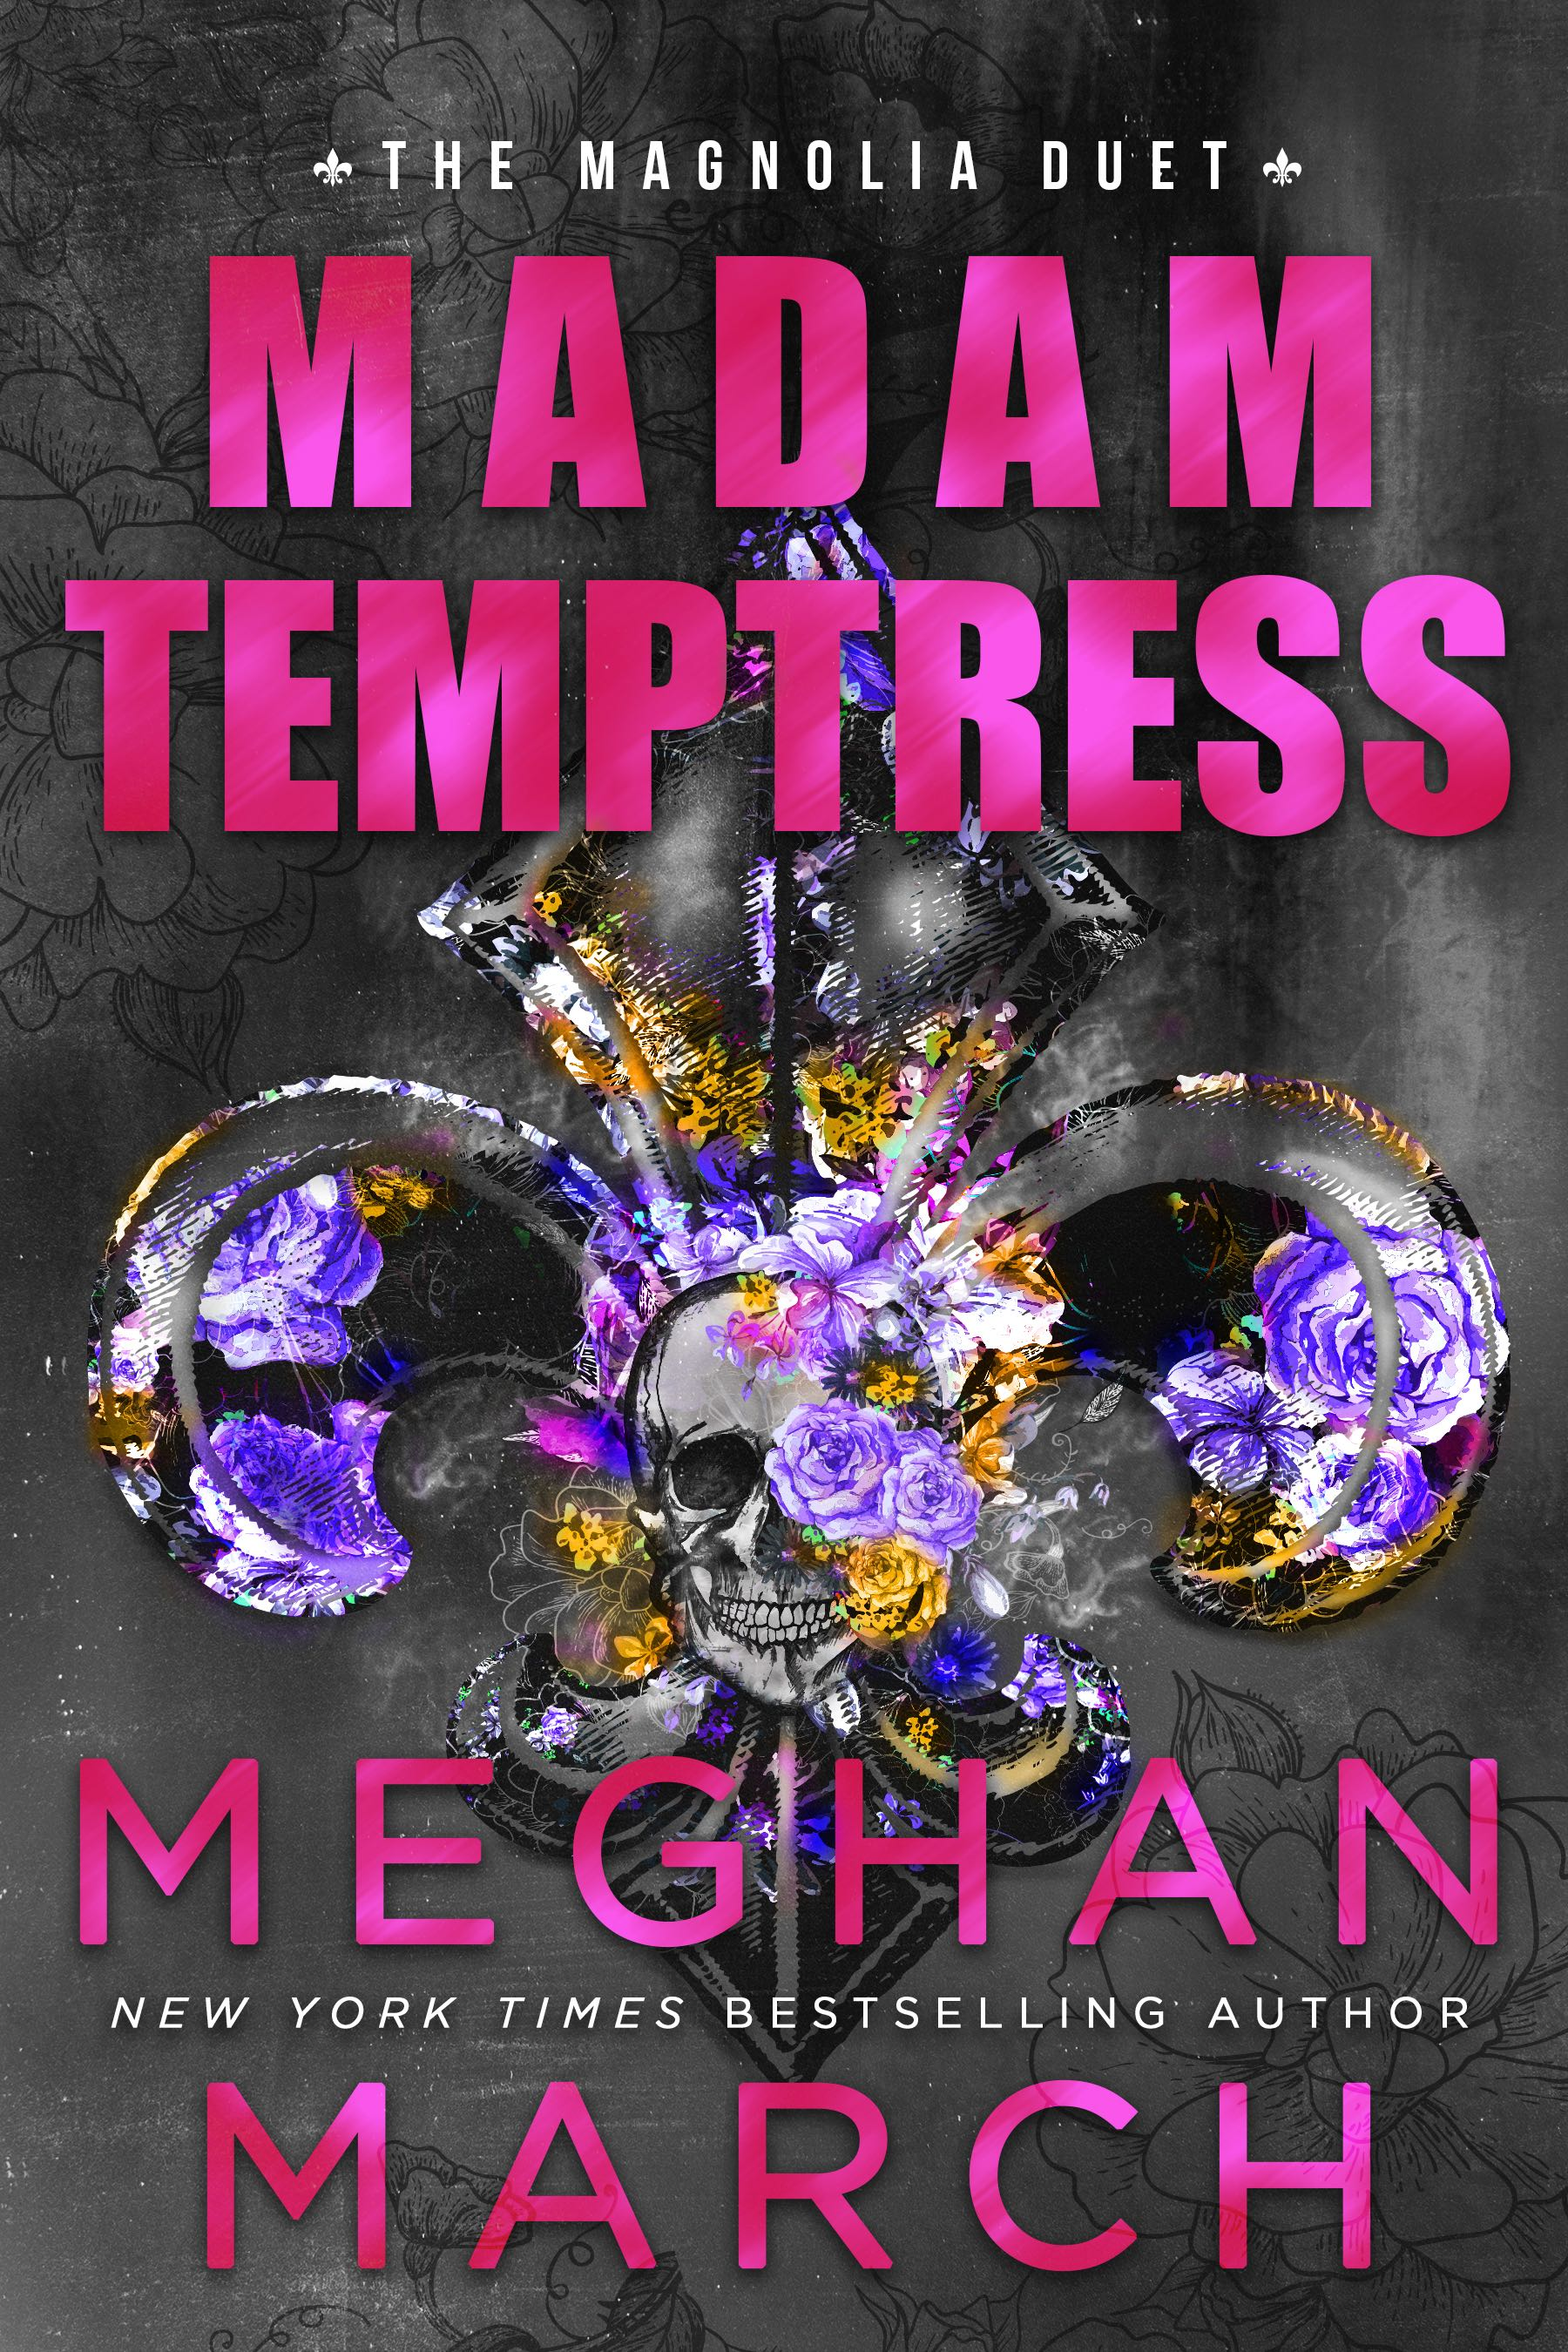 Blog Tour: Madam Temptress by Meghan March with Review